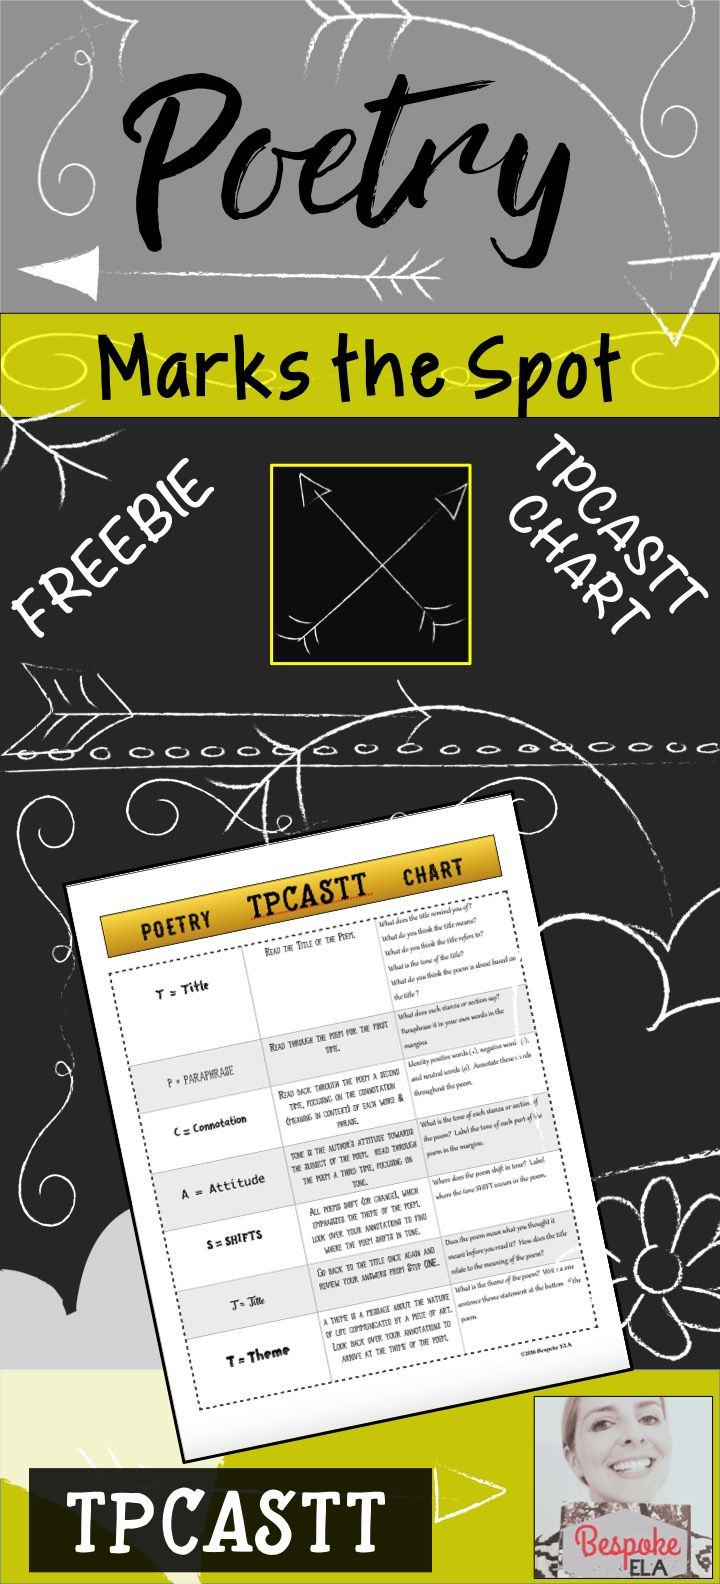 This FREEBIE by Bespoke ELA contains a TPCASTT Chart for analyzing poetry.  It is an excellent addition to any poetry unit in middle school & high school English Language Arts to analyze tone, literary devices, connotations, shift, and theme.  Use this strategy to help your students organize their literary analysis.